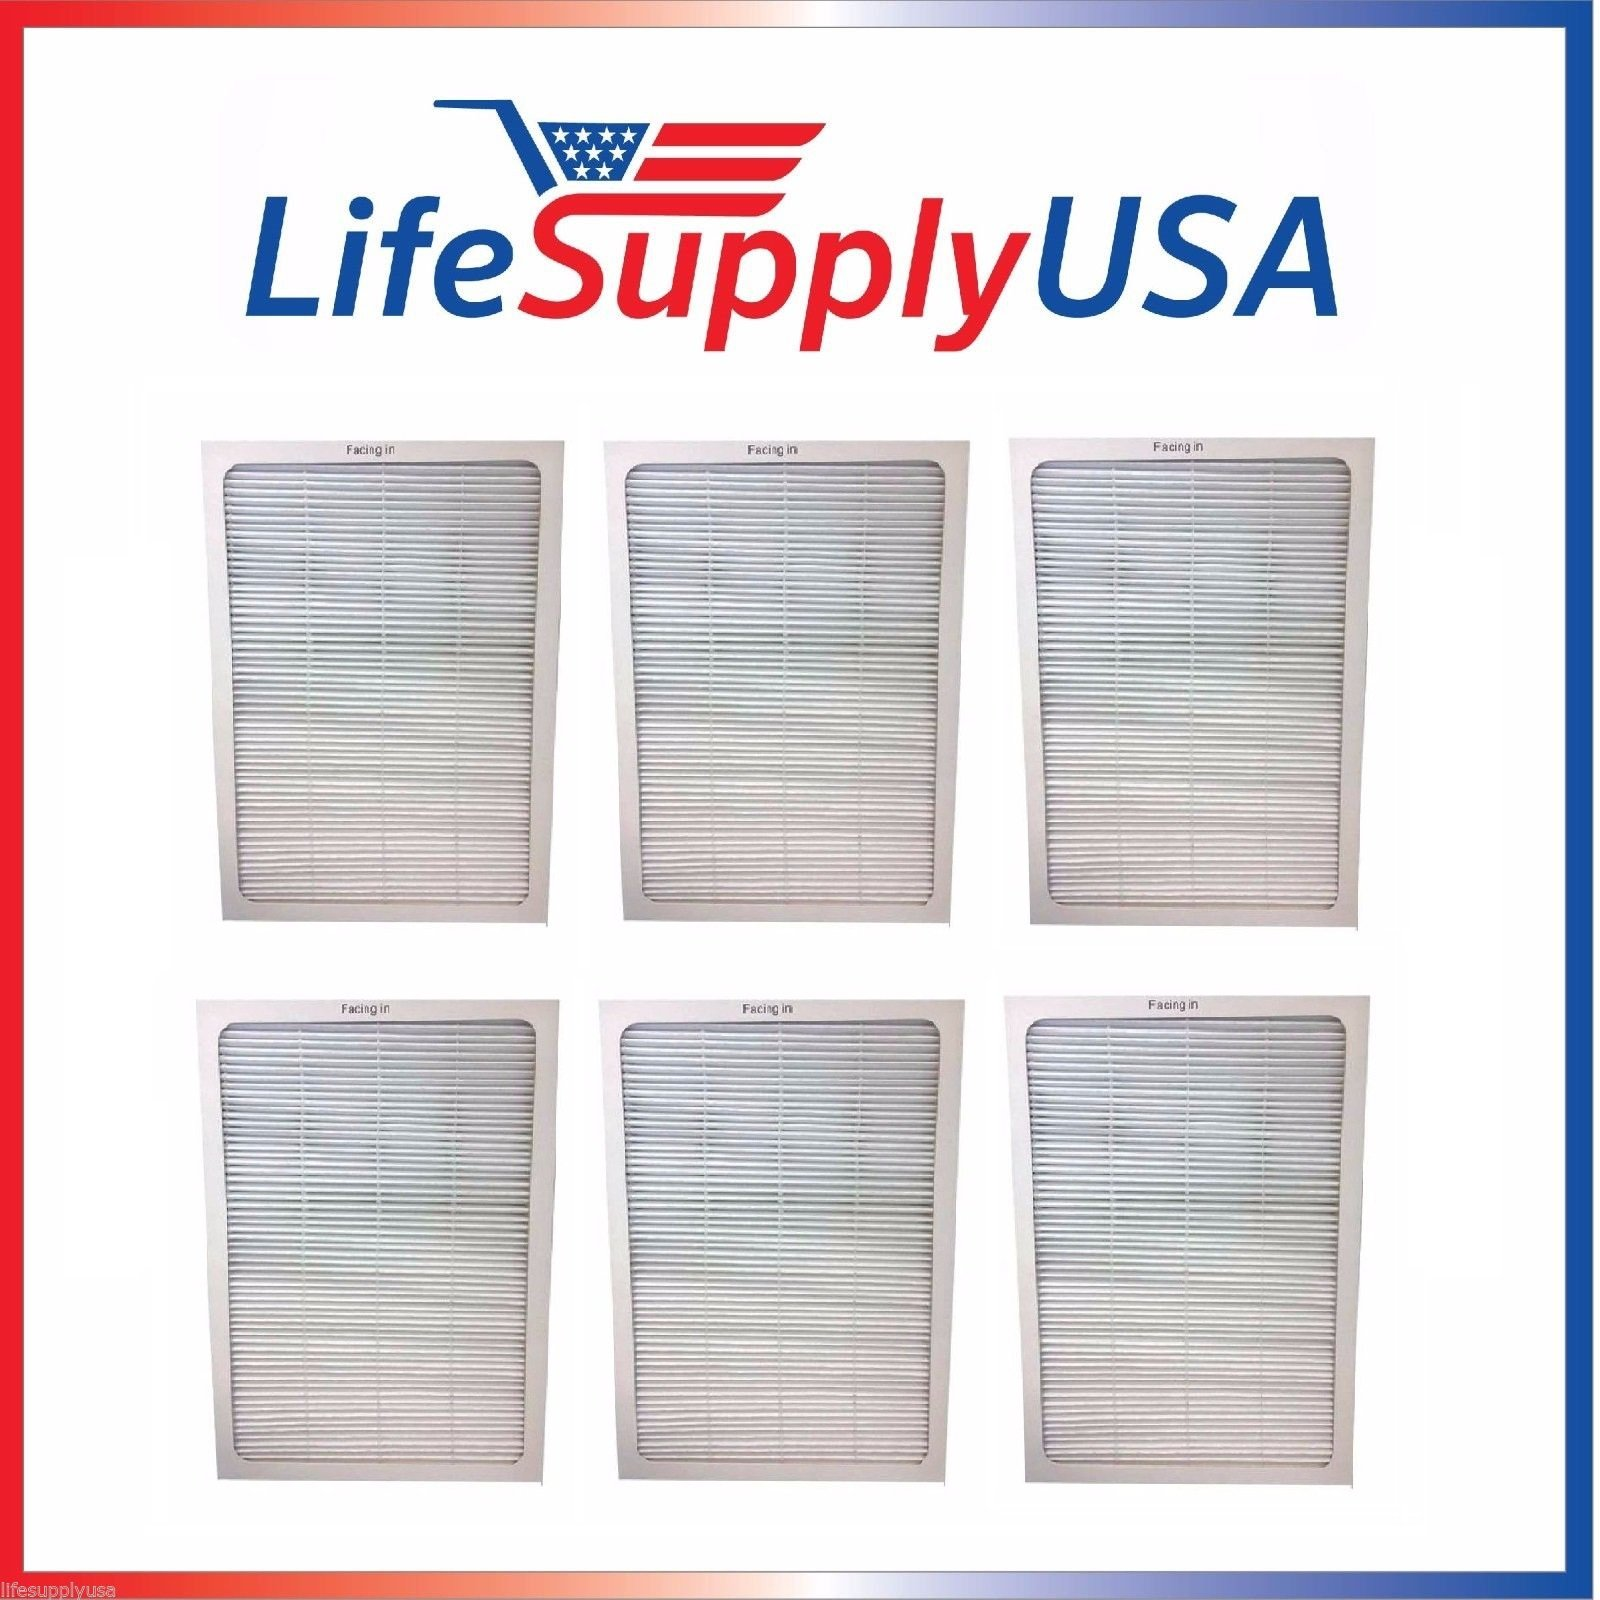 6 Filters - 2 Complete Sets - Air Purifier Set of Filters to fit ALL Blueair 500 and 600 Series ; By LifeSupplyUSA